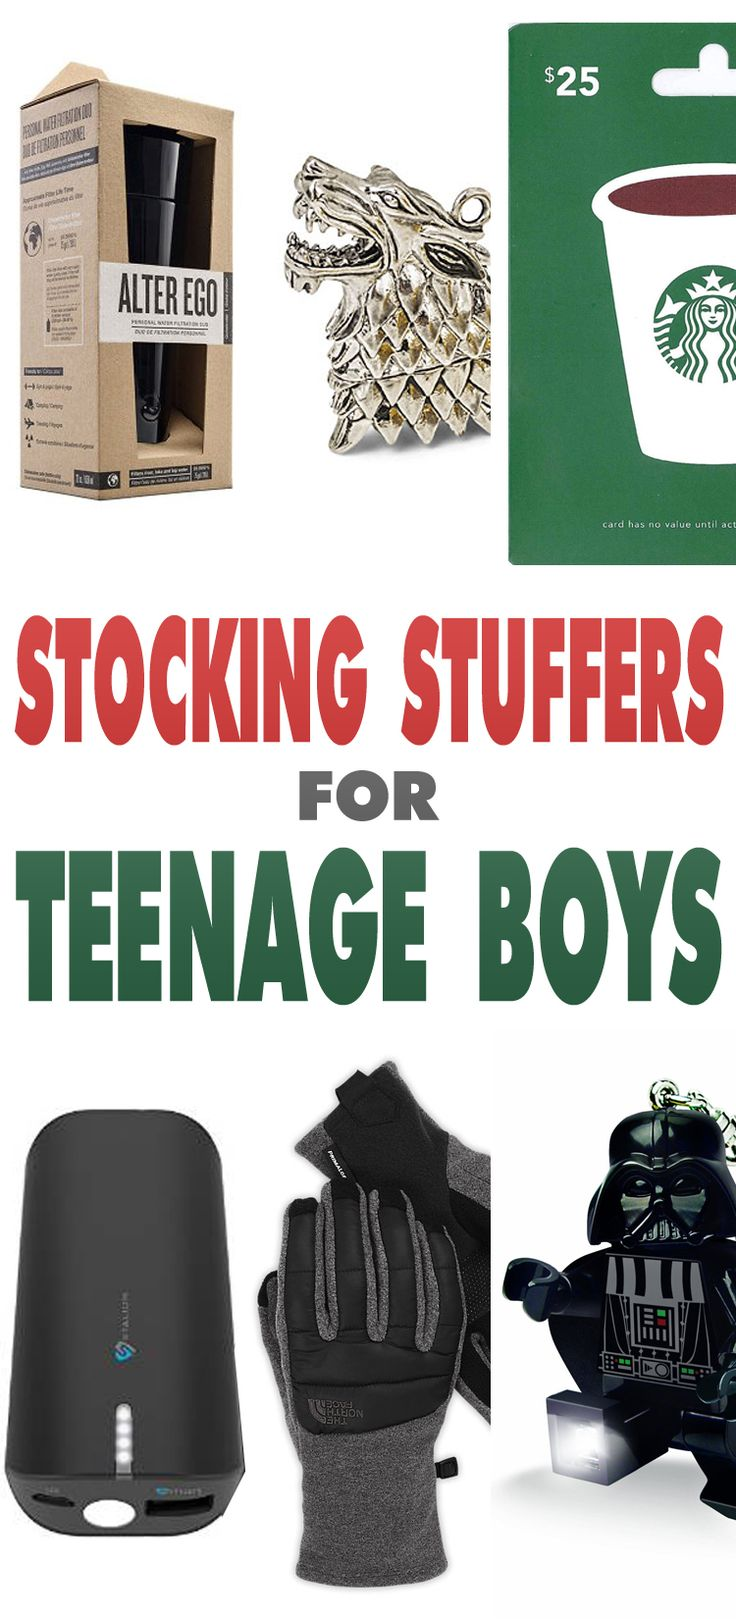 Stocking Stuffers for Teenage Boys - The Cottage Market